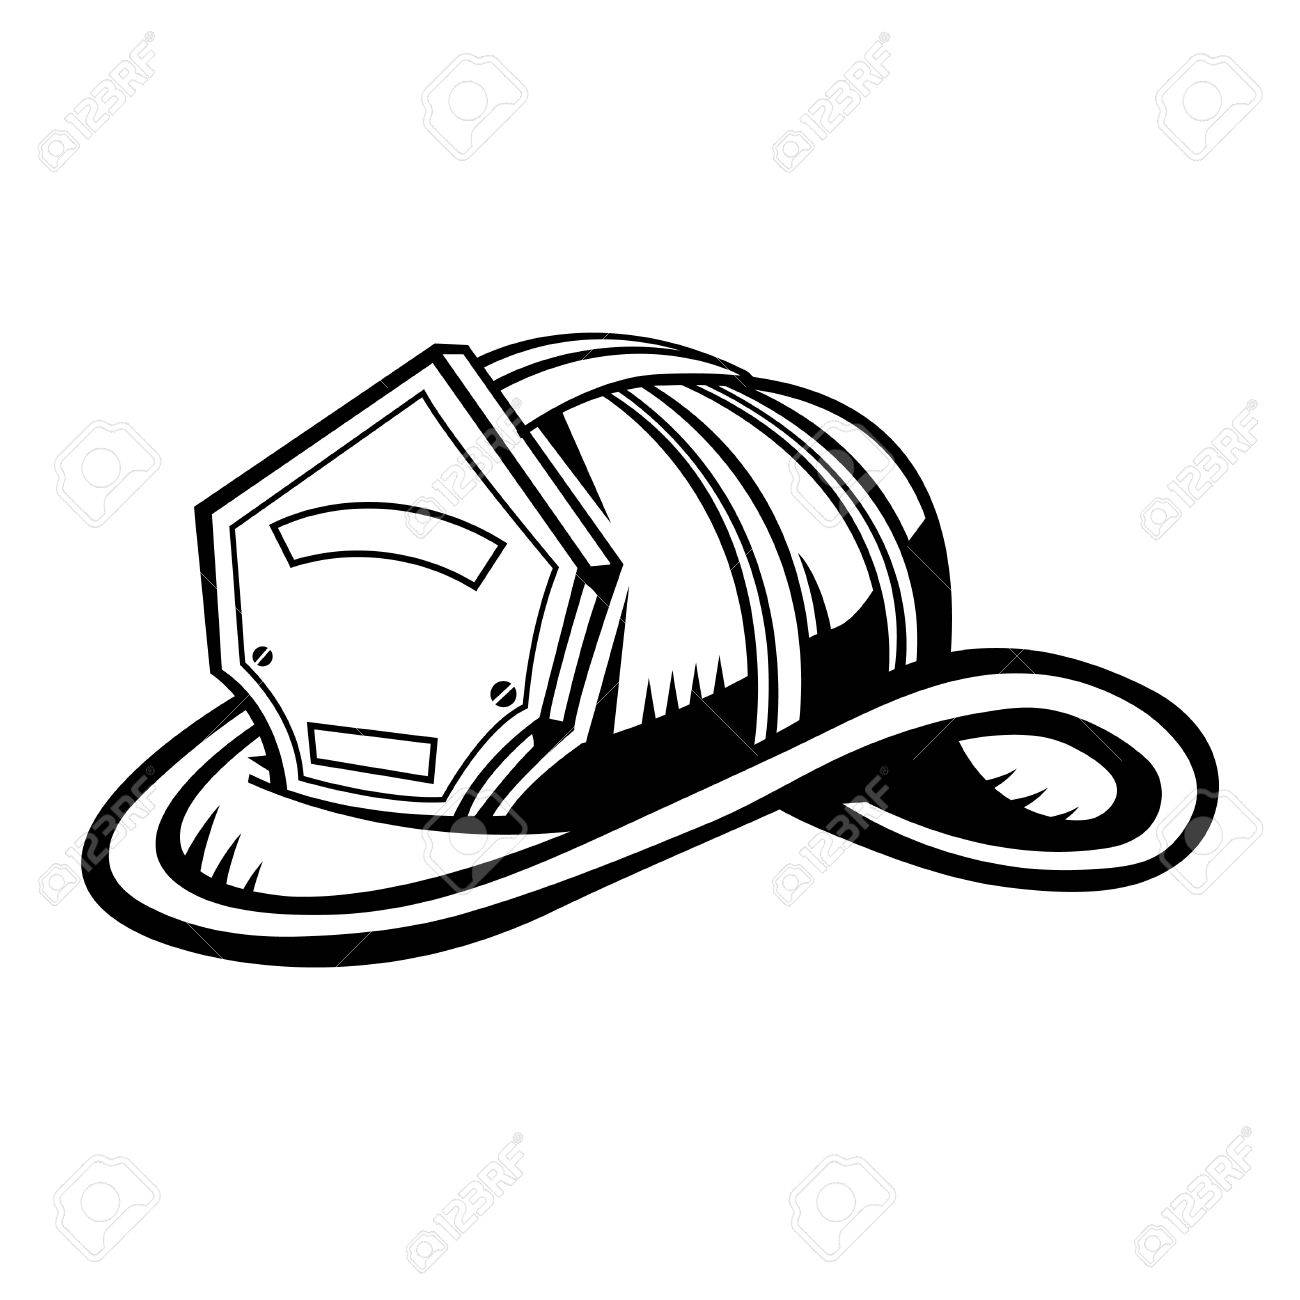 1300x1300 Firefighter Helmet Royalty Free Cliparts, Vectors, And Stock